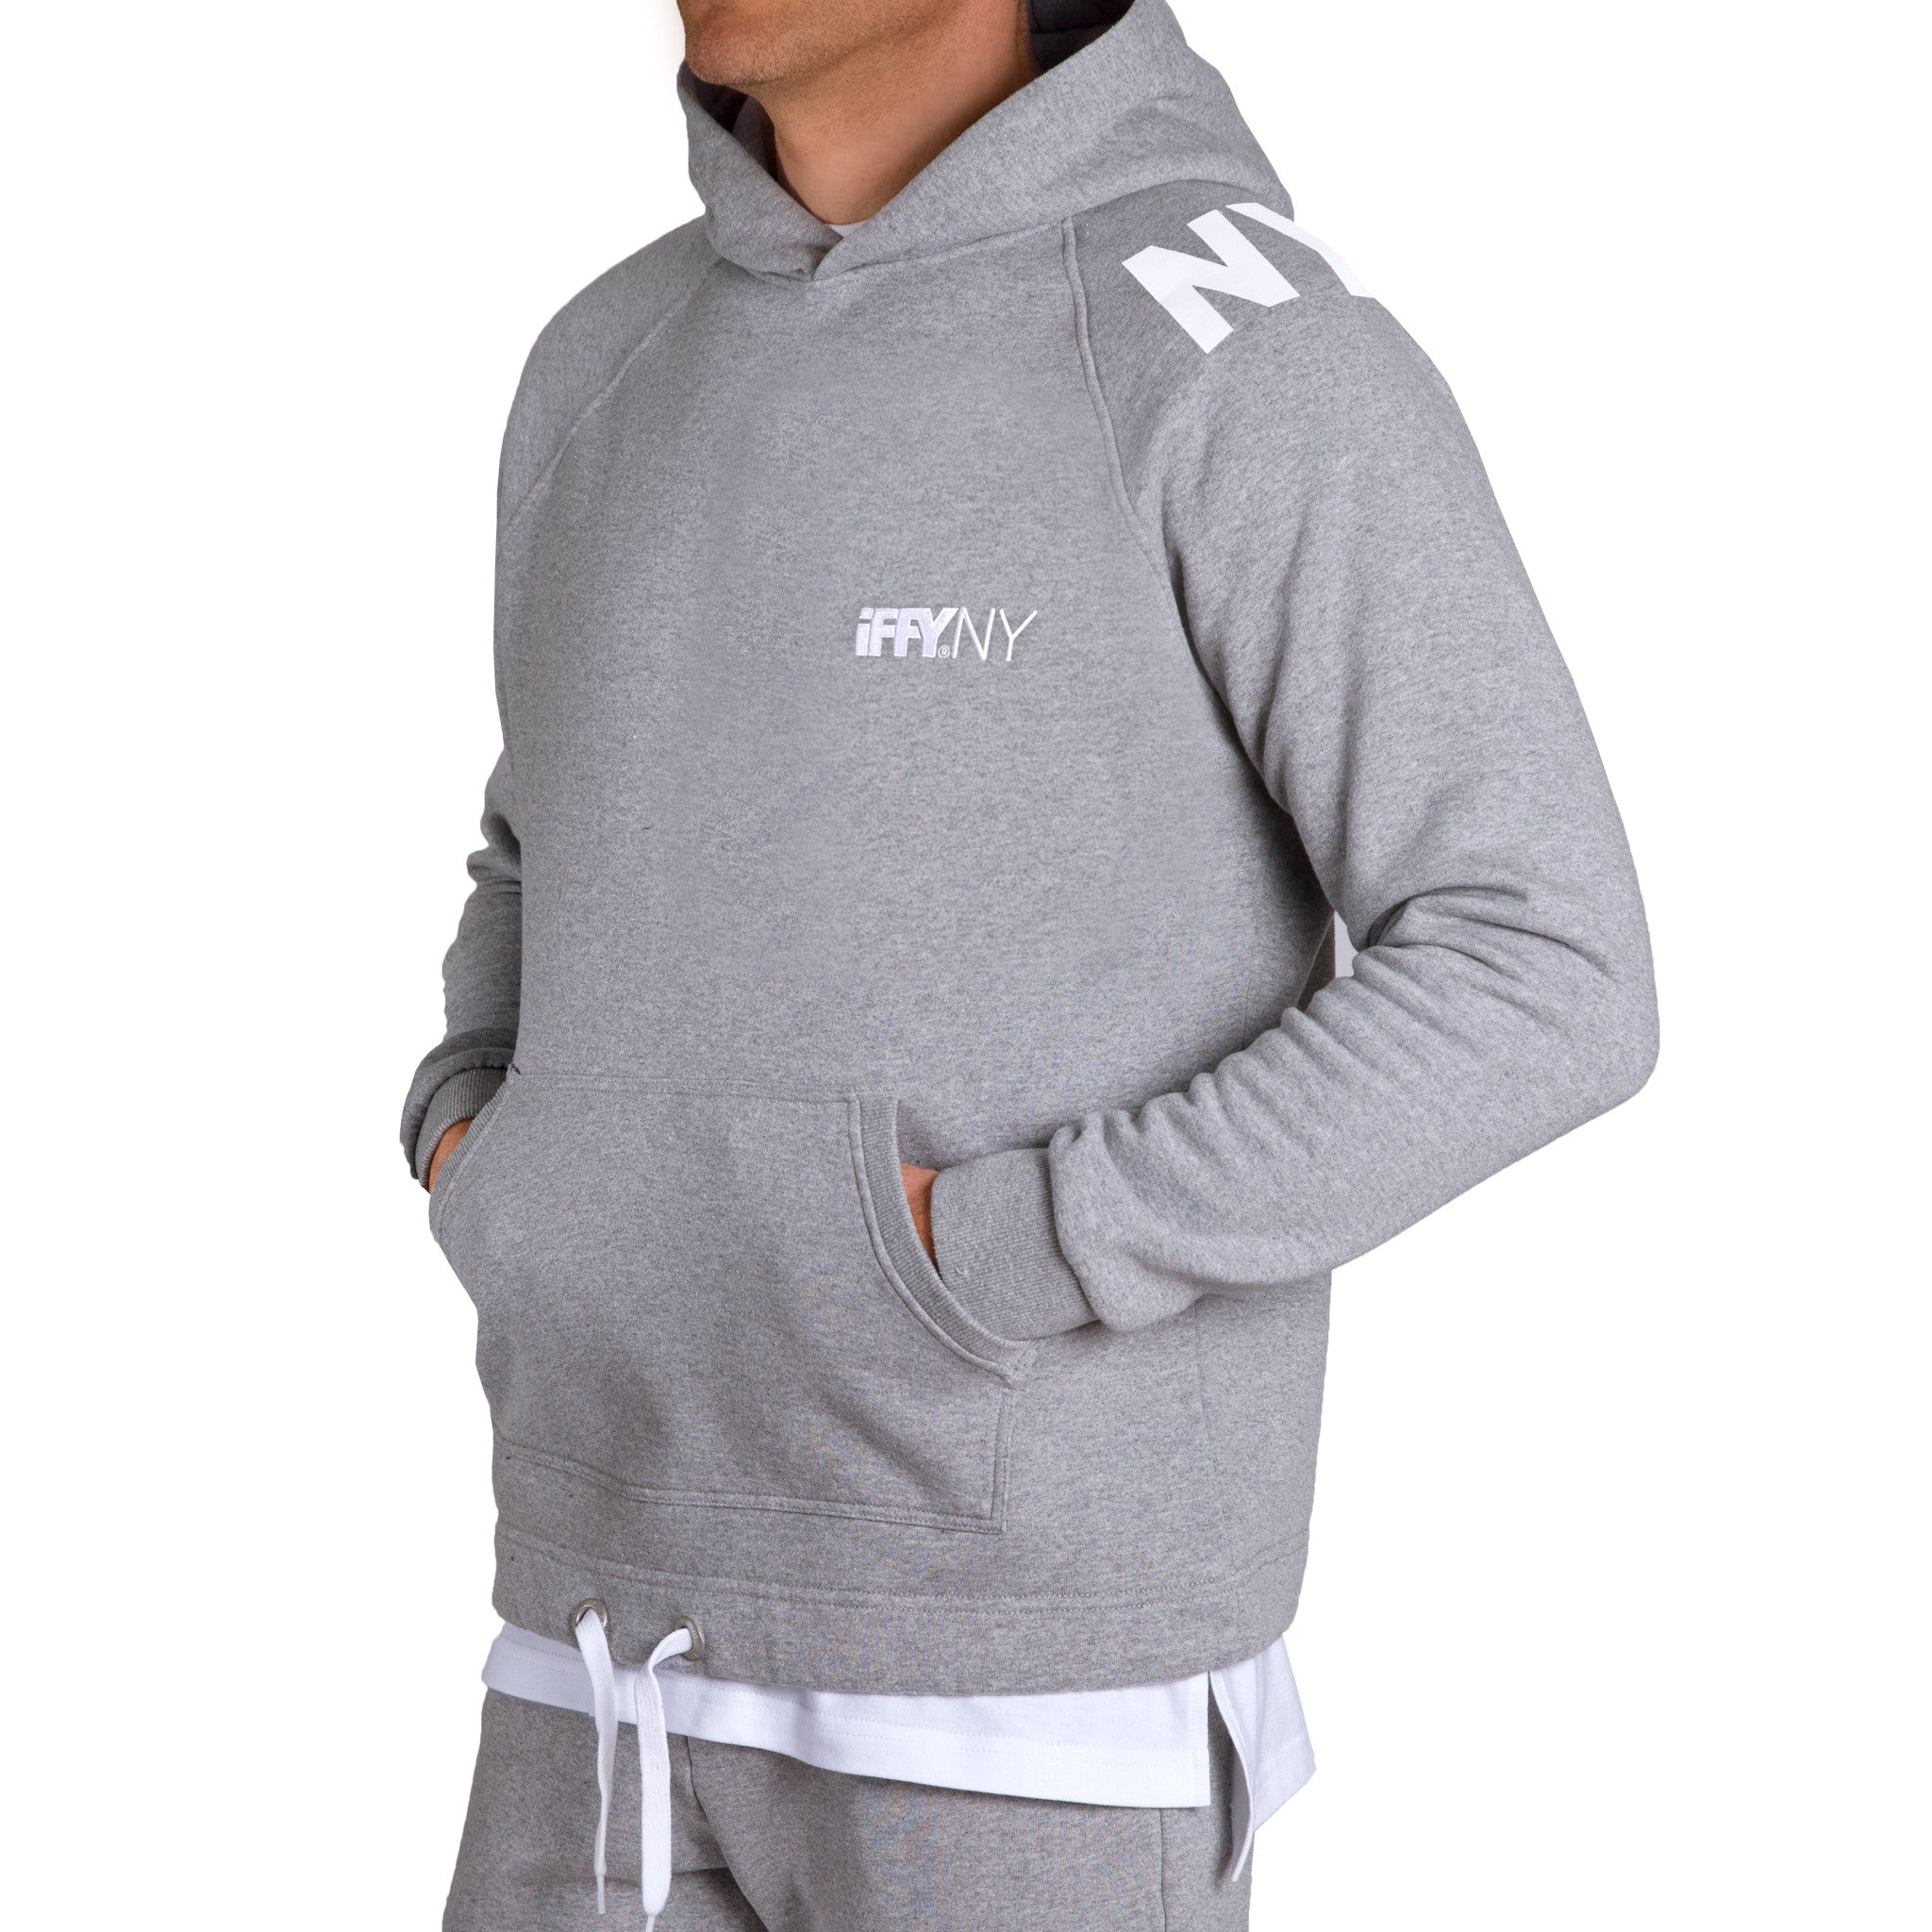 IFFY NY Cooper Hoodie in grey